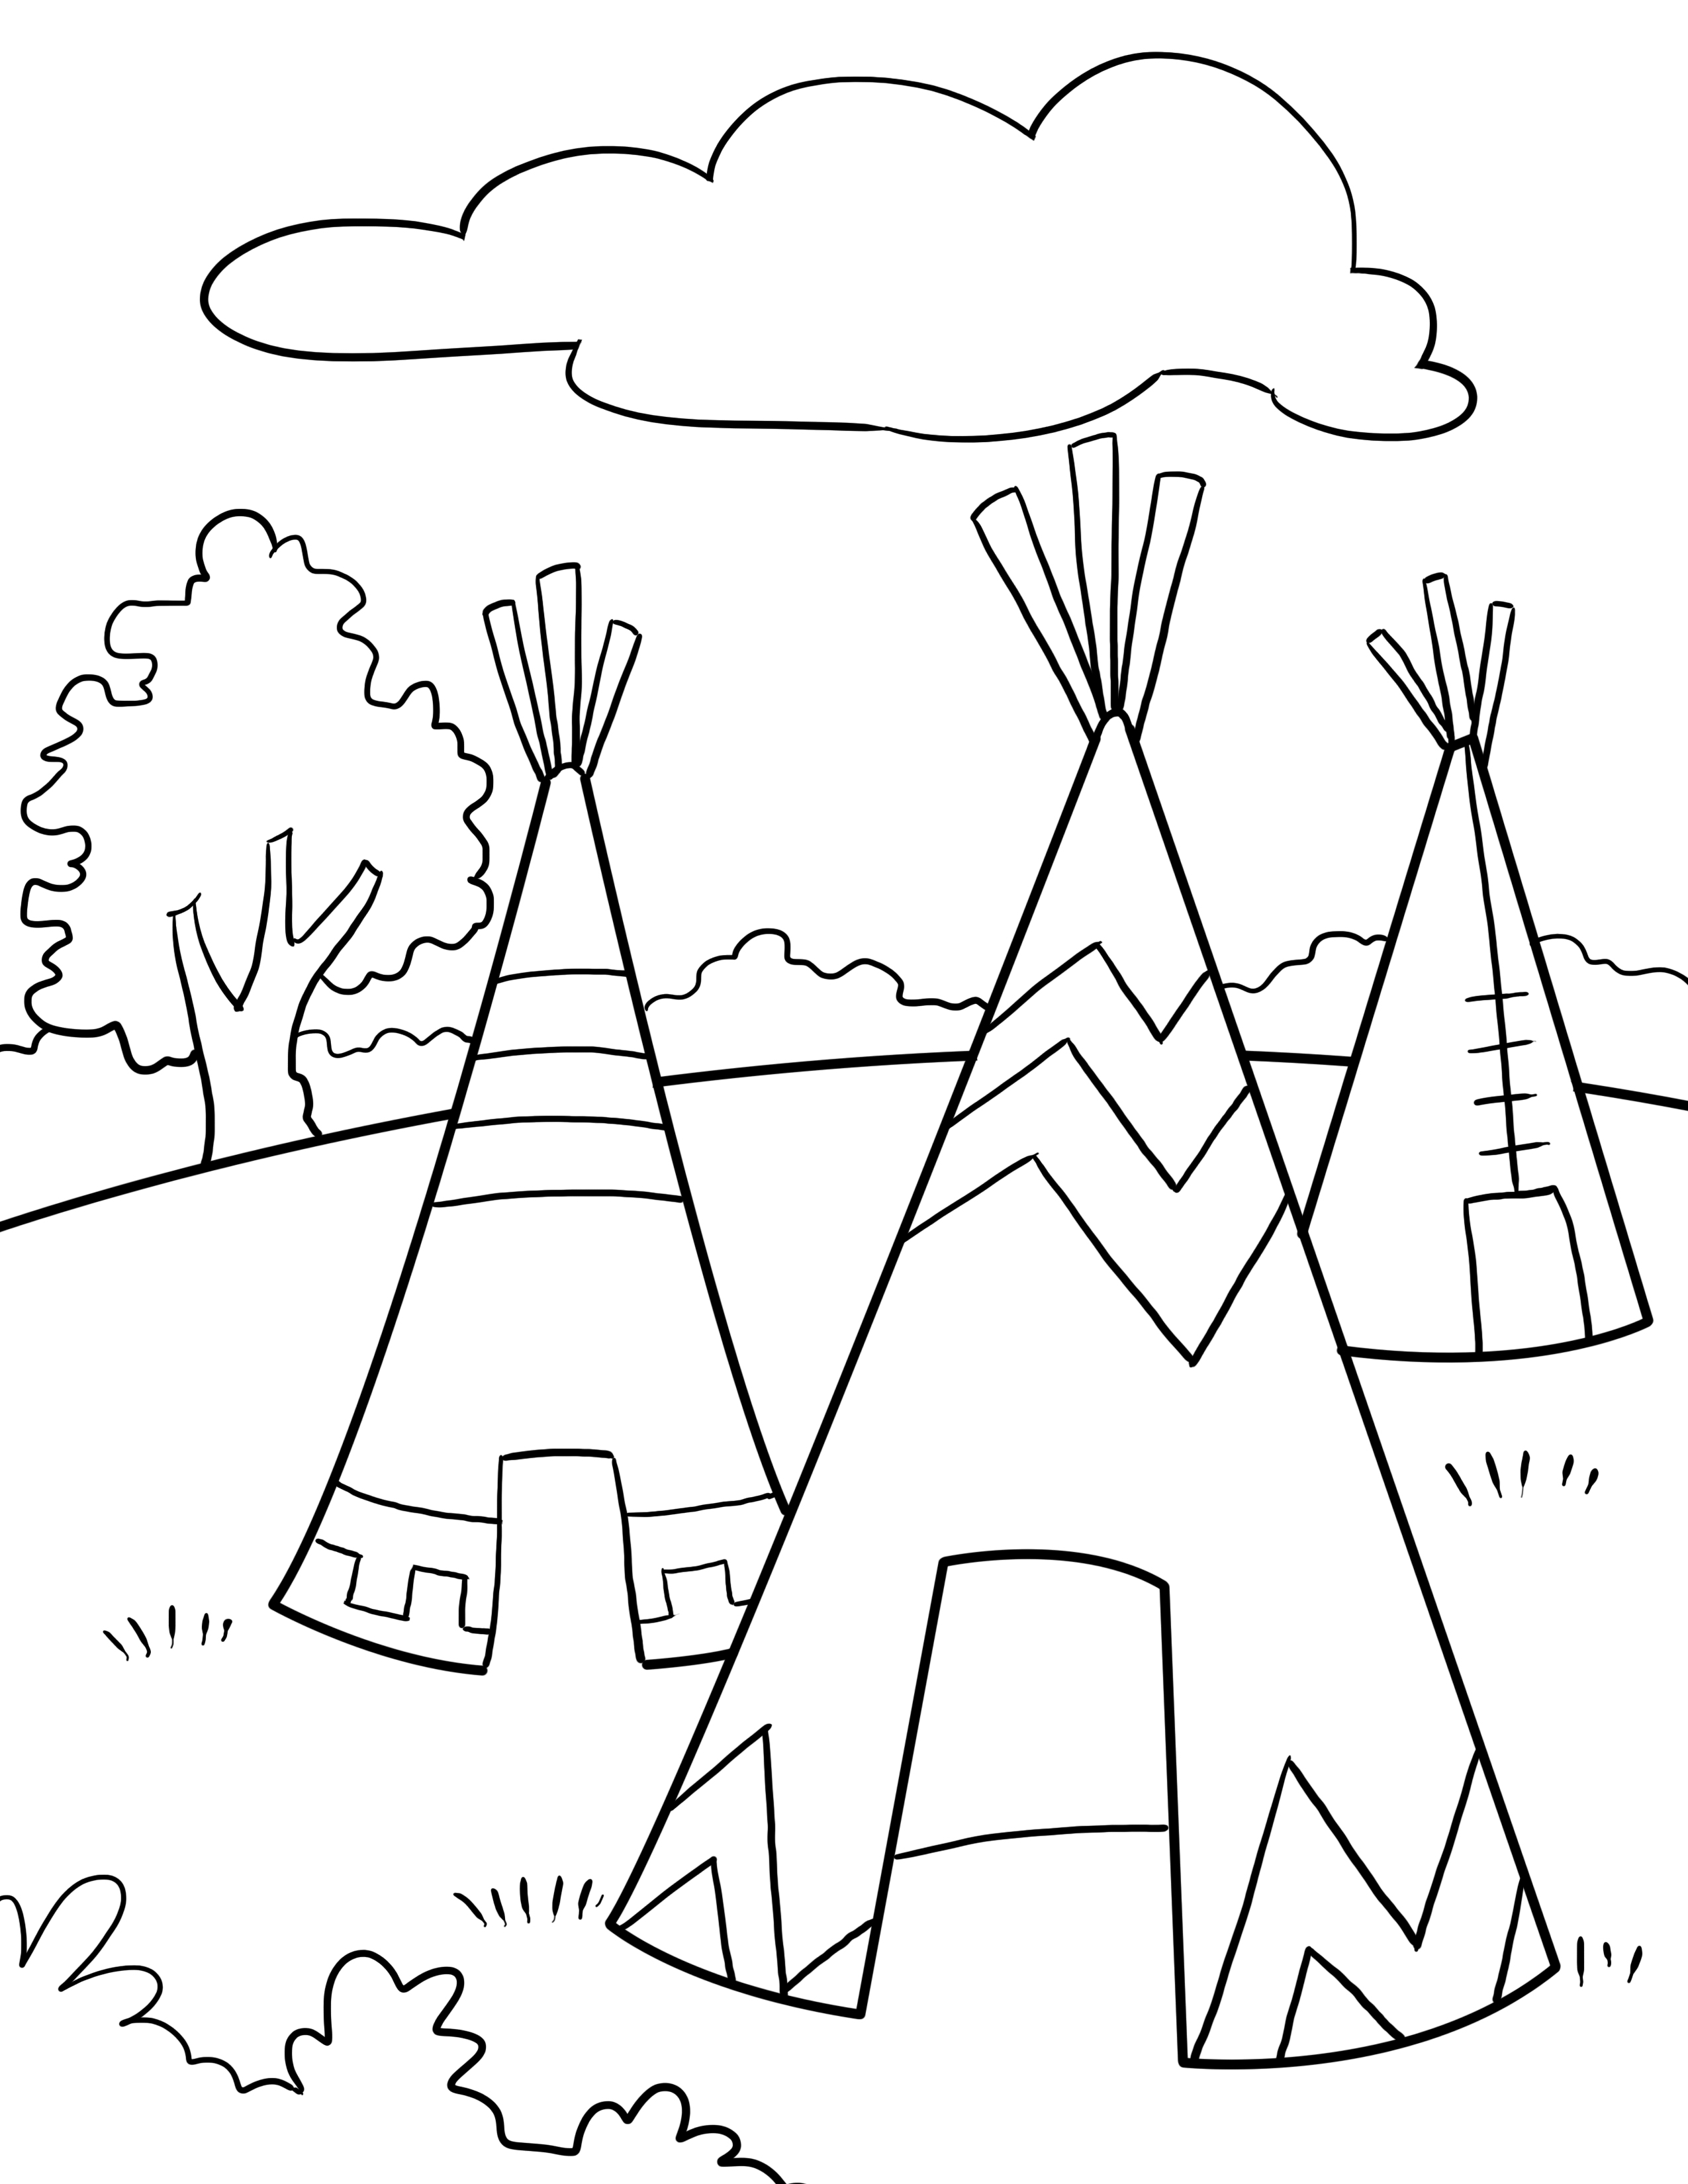 Free coloring pages us symbols